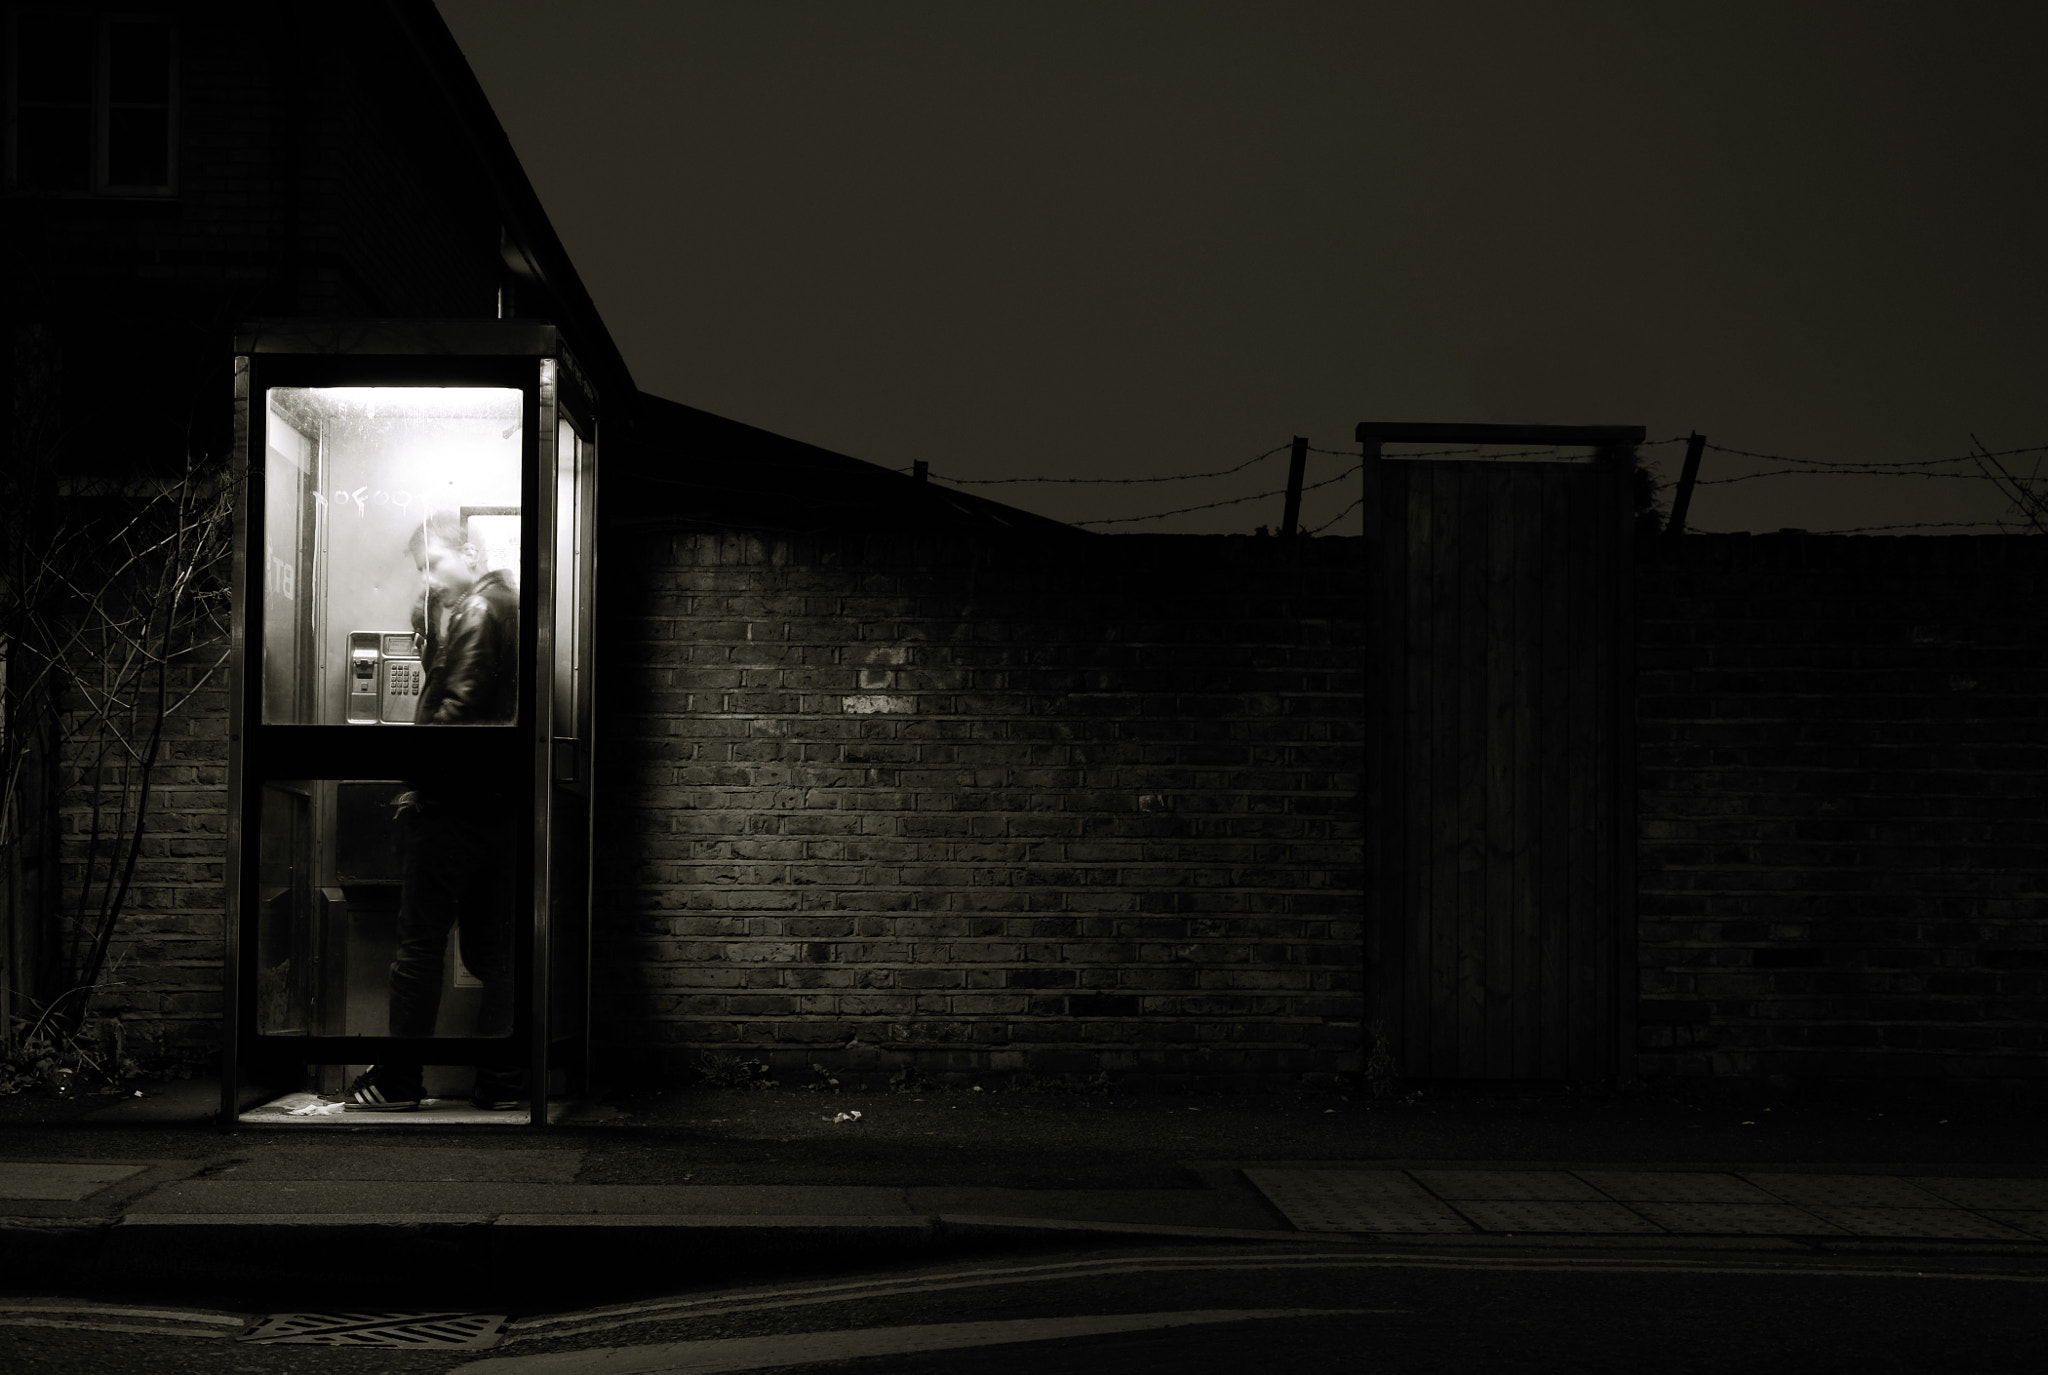 Photograph booth at night by M  on 500px